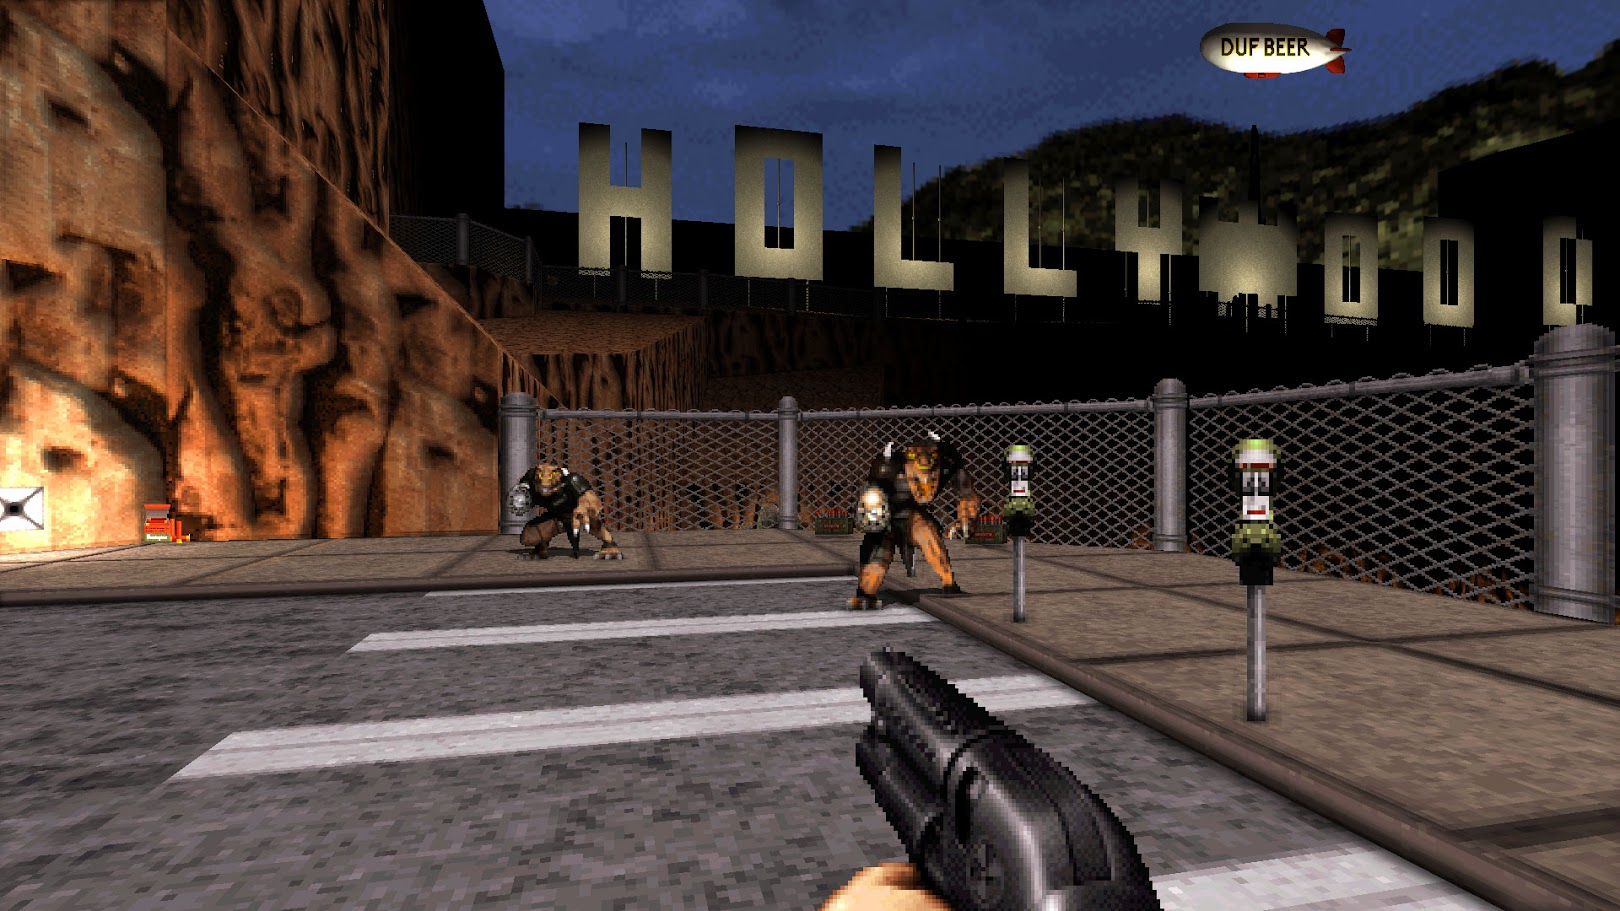 Duke-Nukem-3D-20th-Anniversary-World-Tour_2016_09-02-16_004